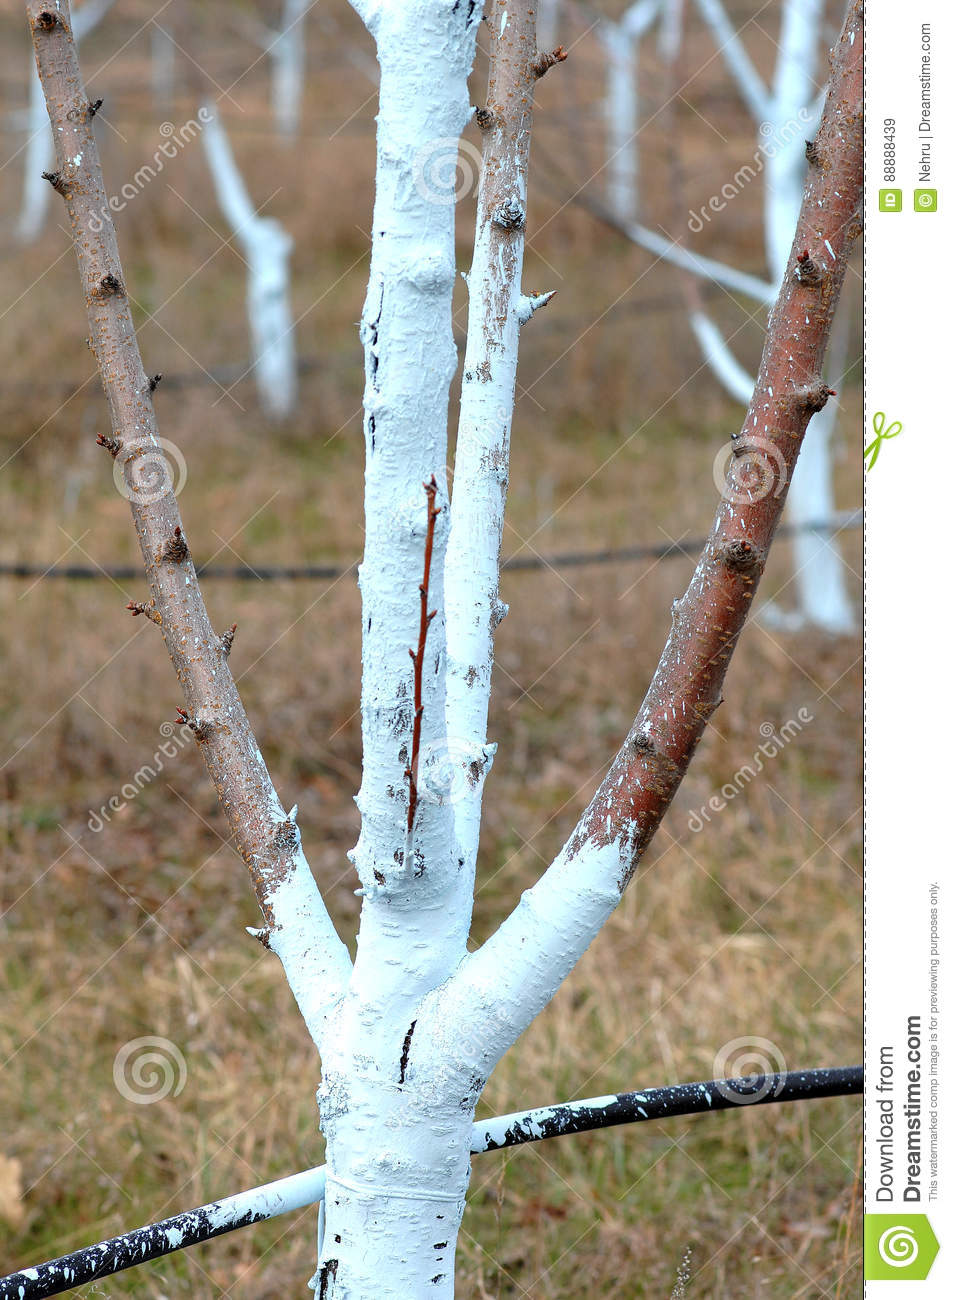 Cherry trees treated with bordeaux mixture to combat mildew royalty free stock photography - Bordeaux mixture ...